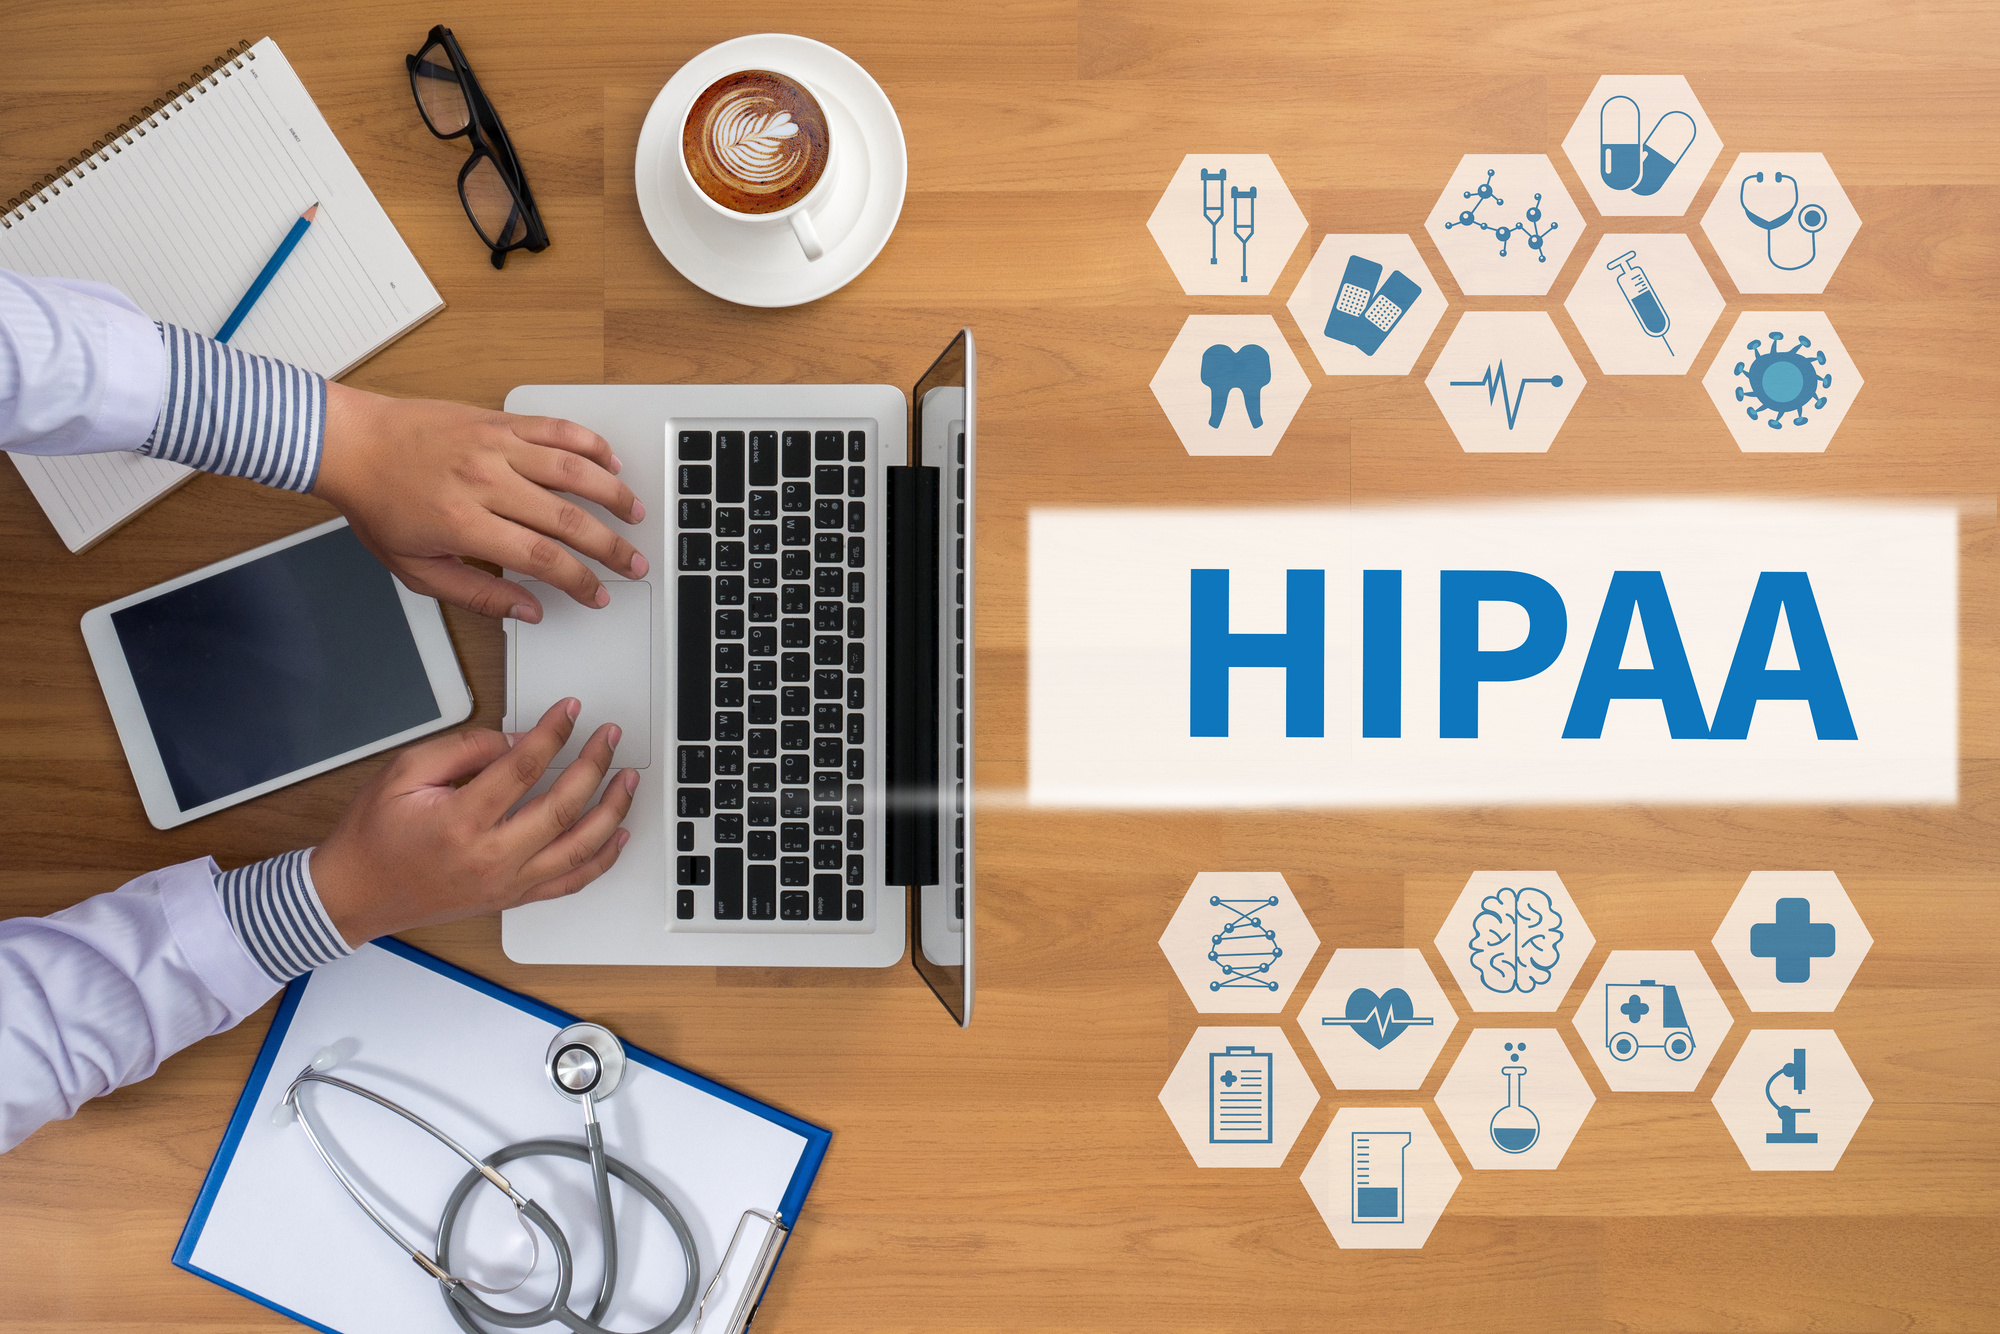 Chances are you've encountered HIPAA rules at some point in your life. But what is HIPAA and why is it important? We explain the basics here!